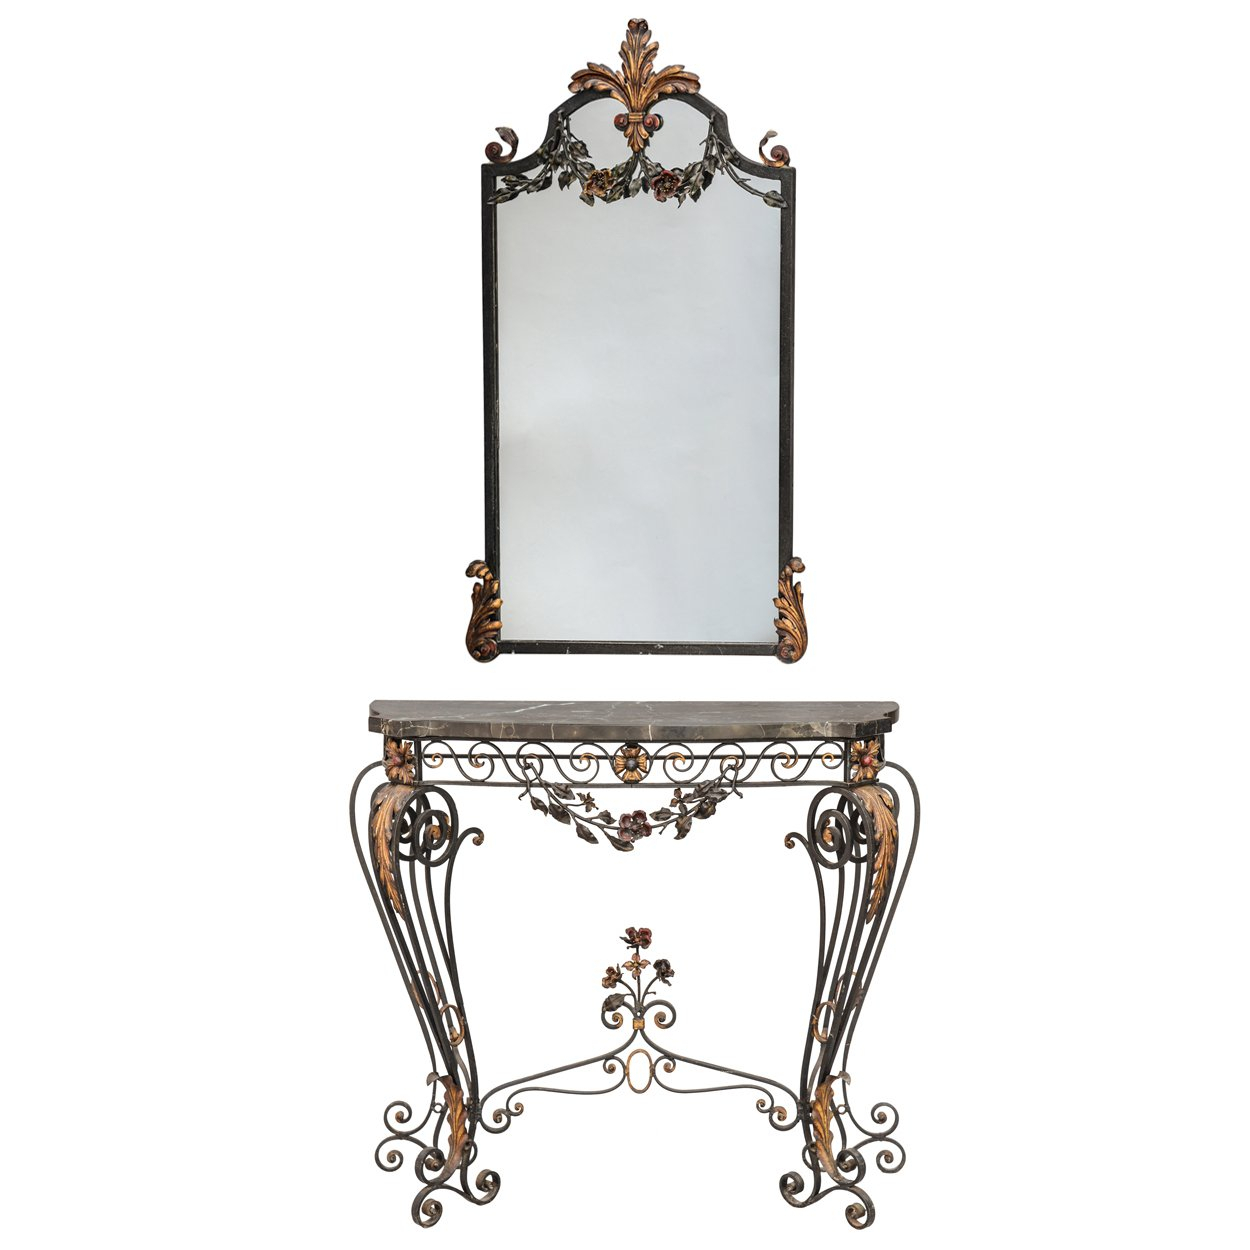 Marble And Bronzed Cast-Iron Console Table With Mirroroscar Bach intended for Oscar 60 Inch Console Tables (Image 20 of 30)